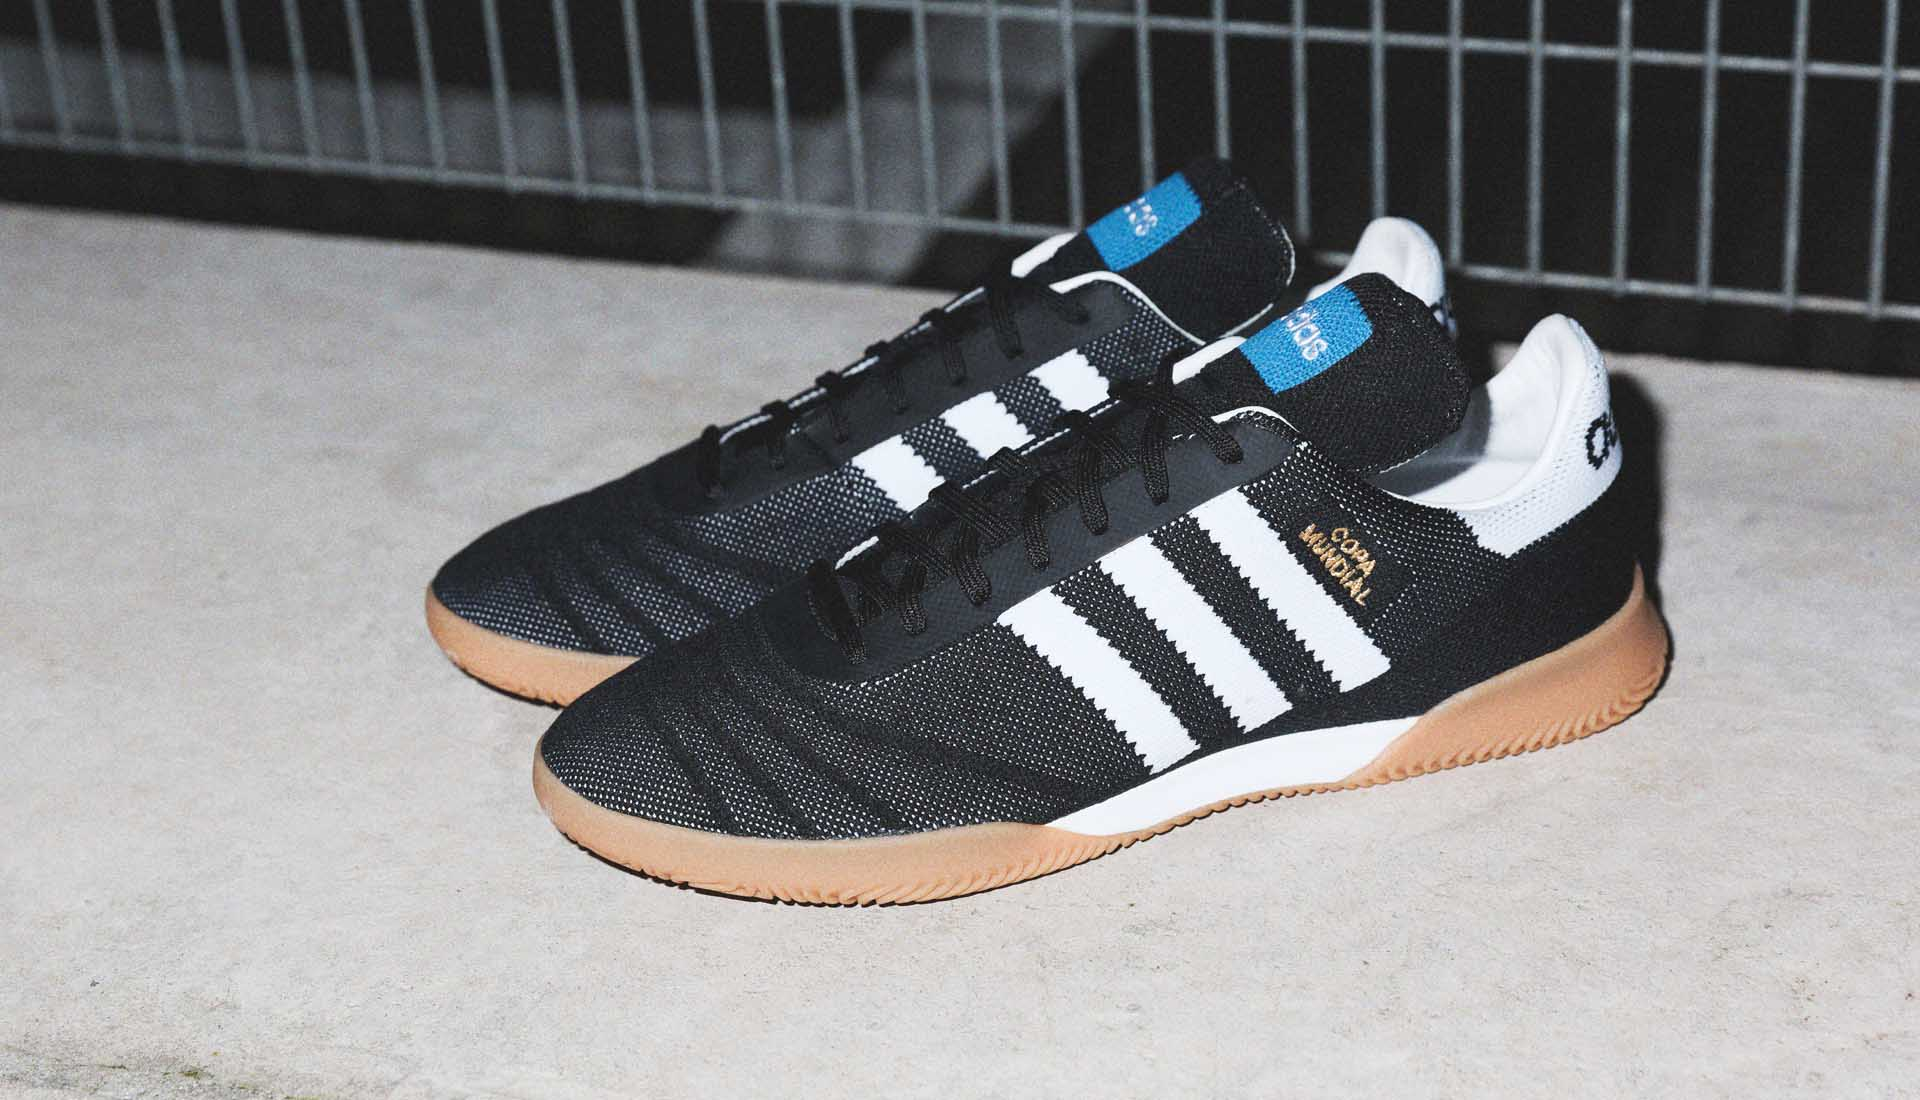 6e54ee190 adidas Drop Two Limited Edition COPA 70Y Sneakers - SoccerBible